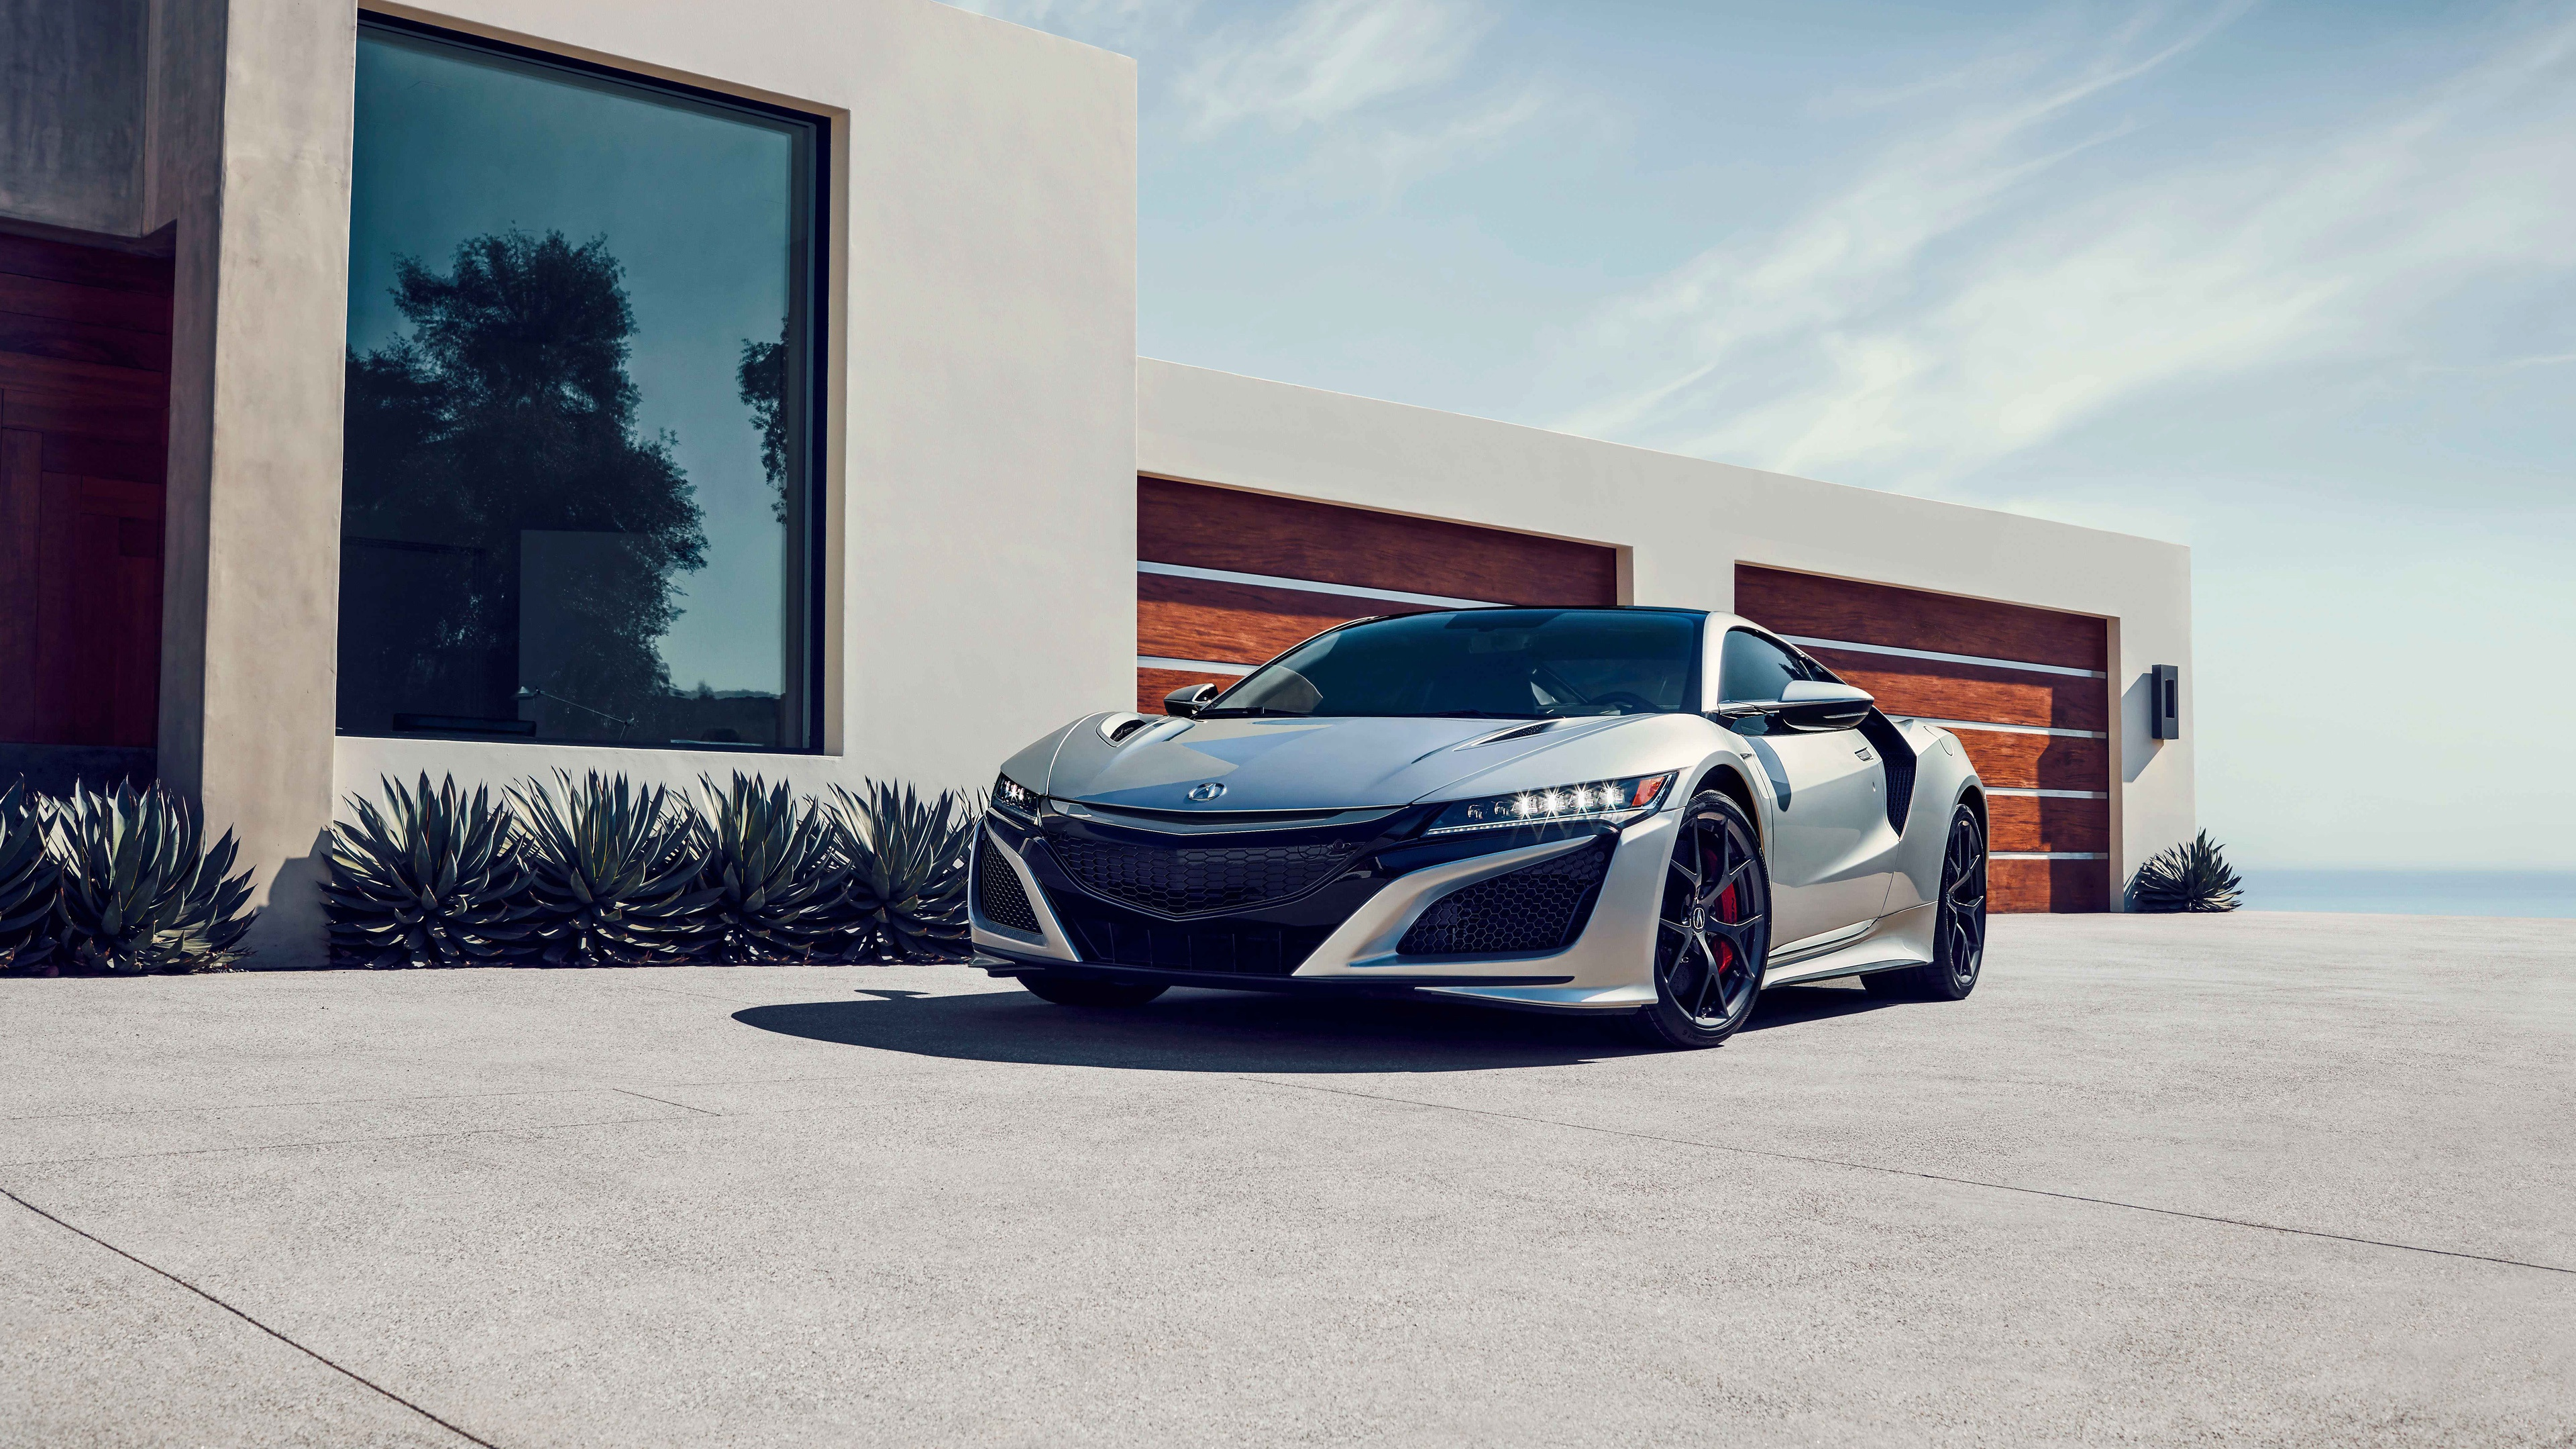 Acura NSX 4k Ultra HD Wallpaper Background Image 3840x2160 3840x2160